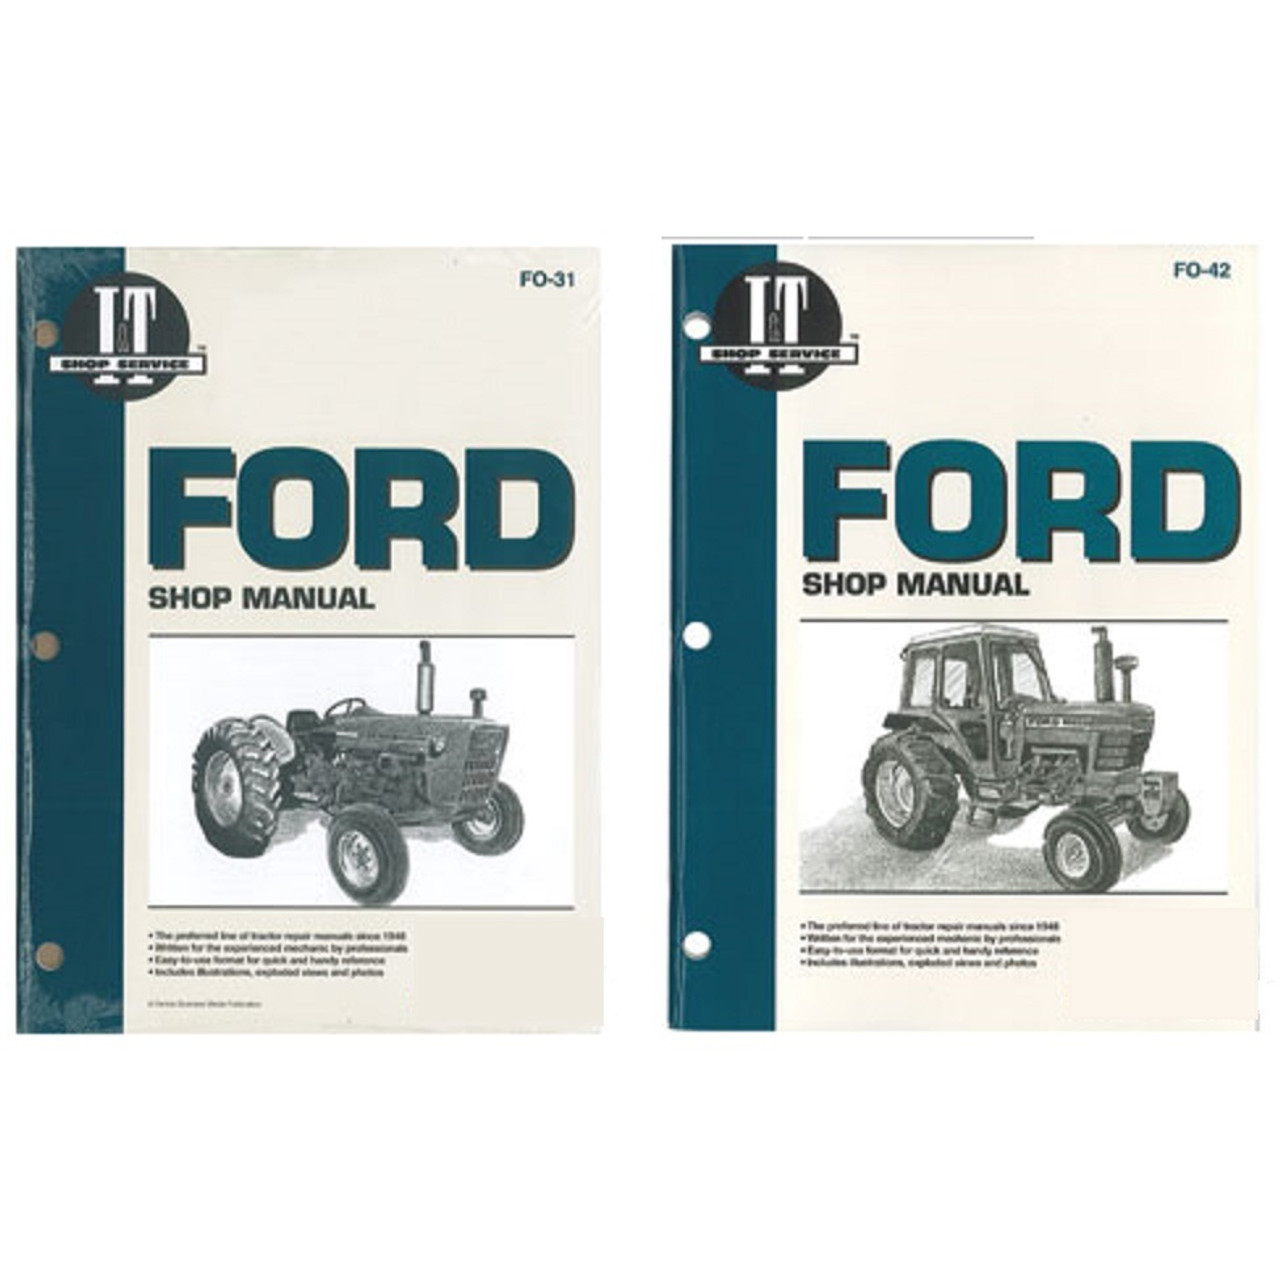 Used Ford Parts Backhoe 7740 Tractor Wiring Harness Kits Repair Manual